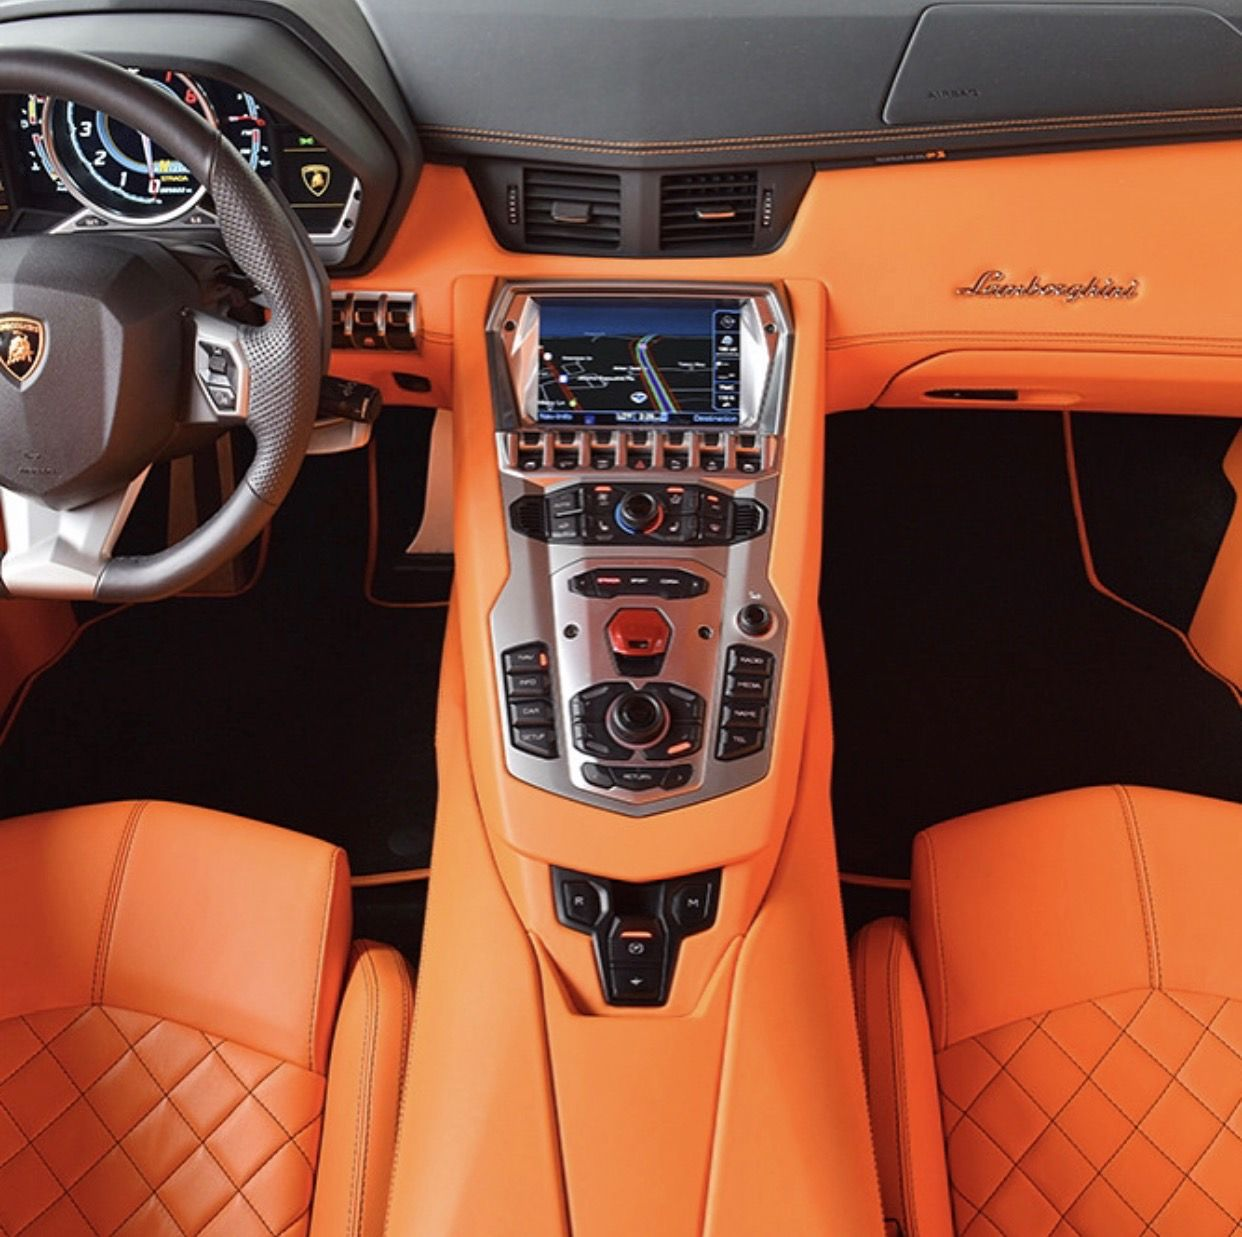 An Orange Leather Interior From A Lamborghini Aventador